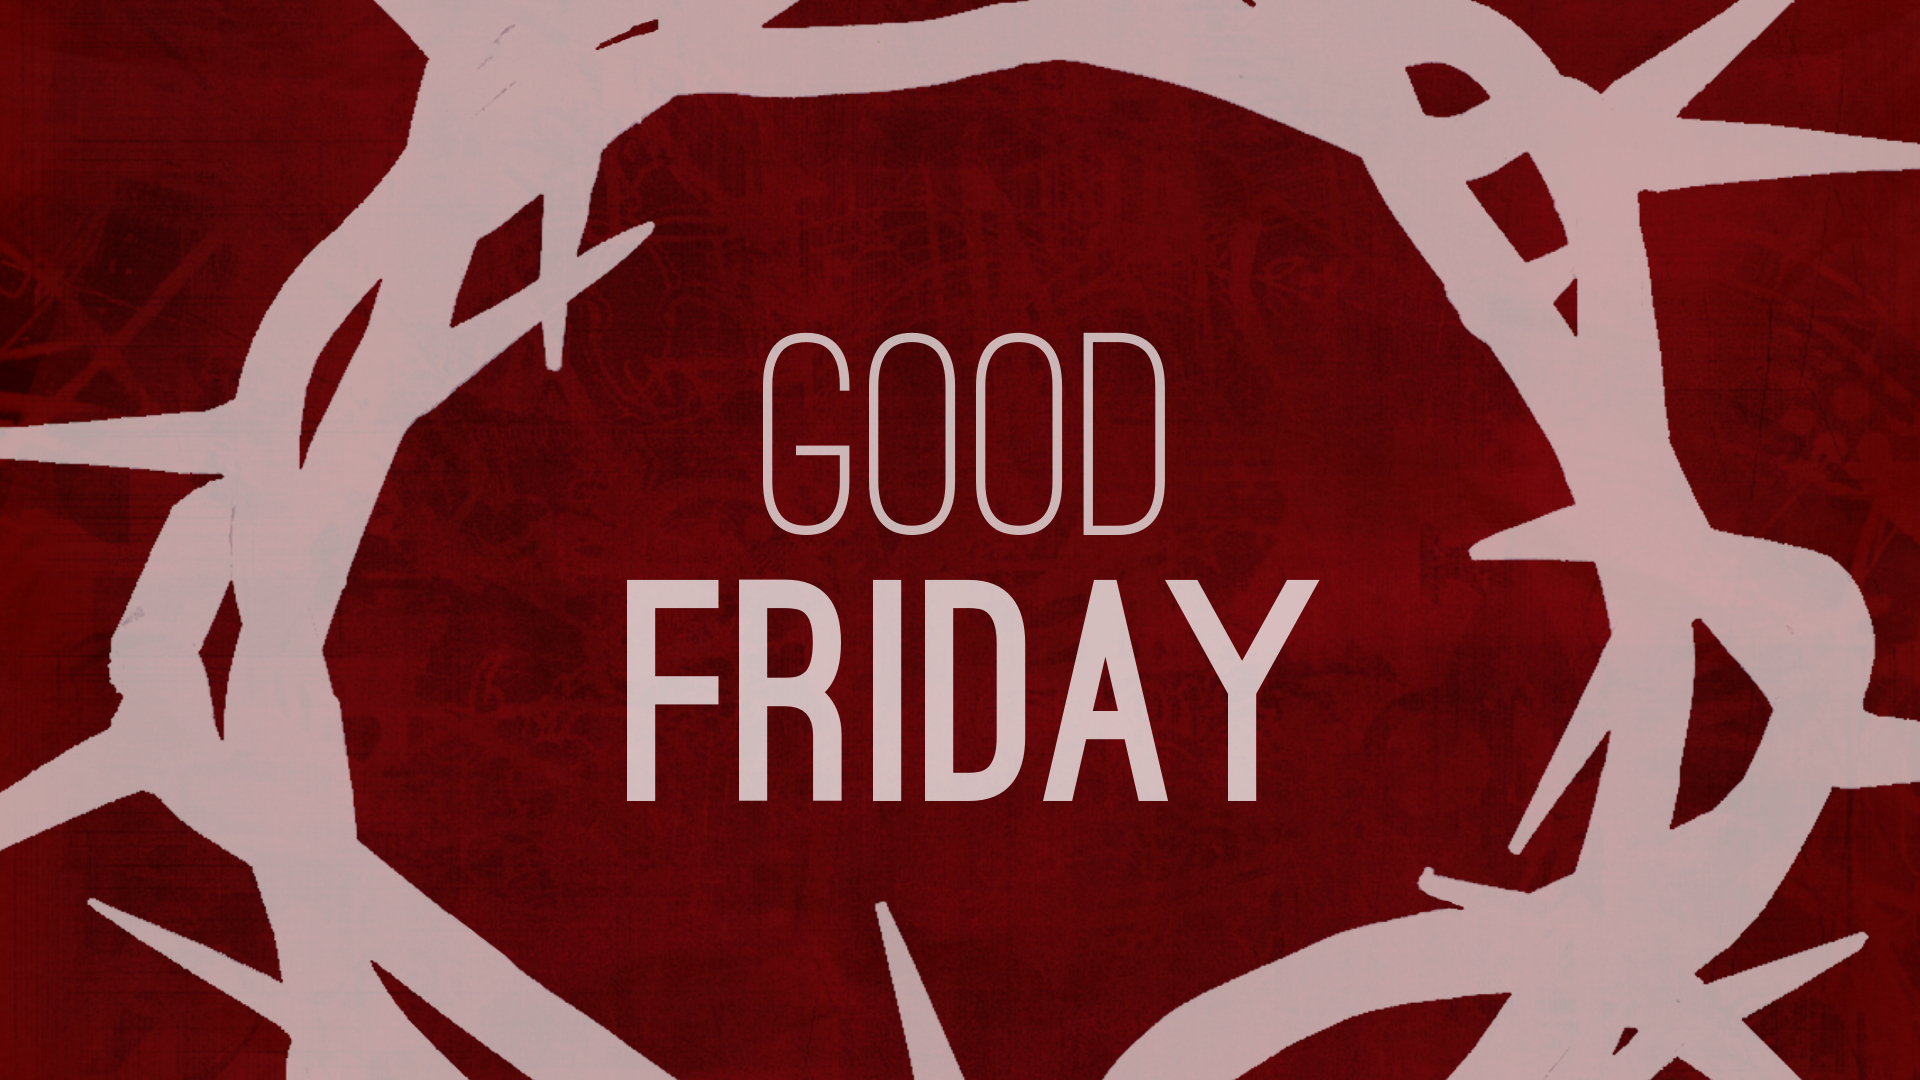 Good Friday Wallpapers Hd